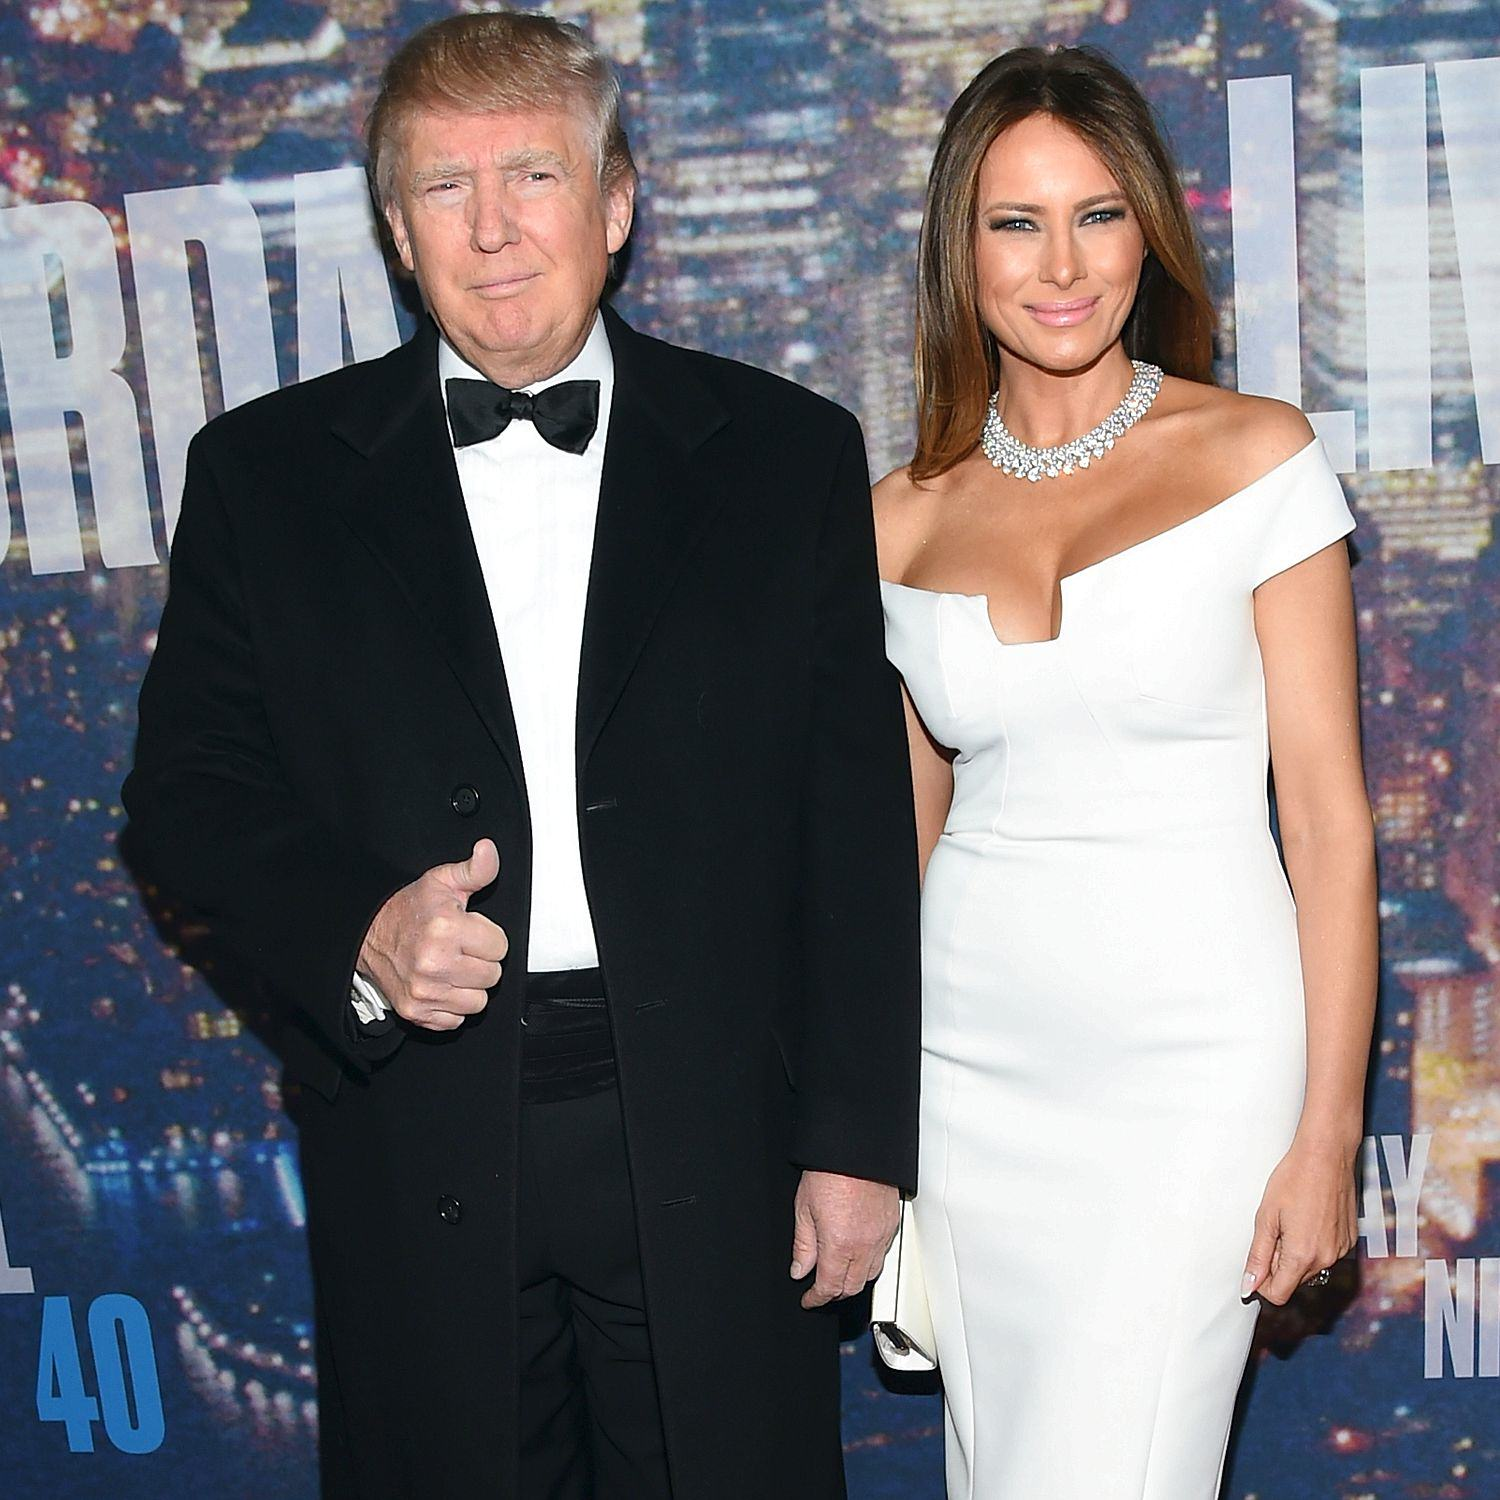 If Donald Trump Becomes President, This Is Who Will Be The First Lady 03 14024739 de8c0a 2602994a